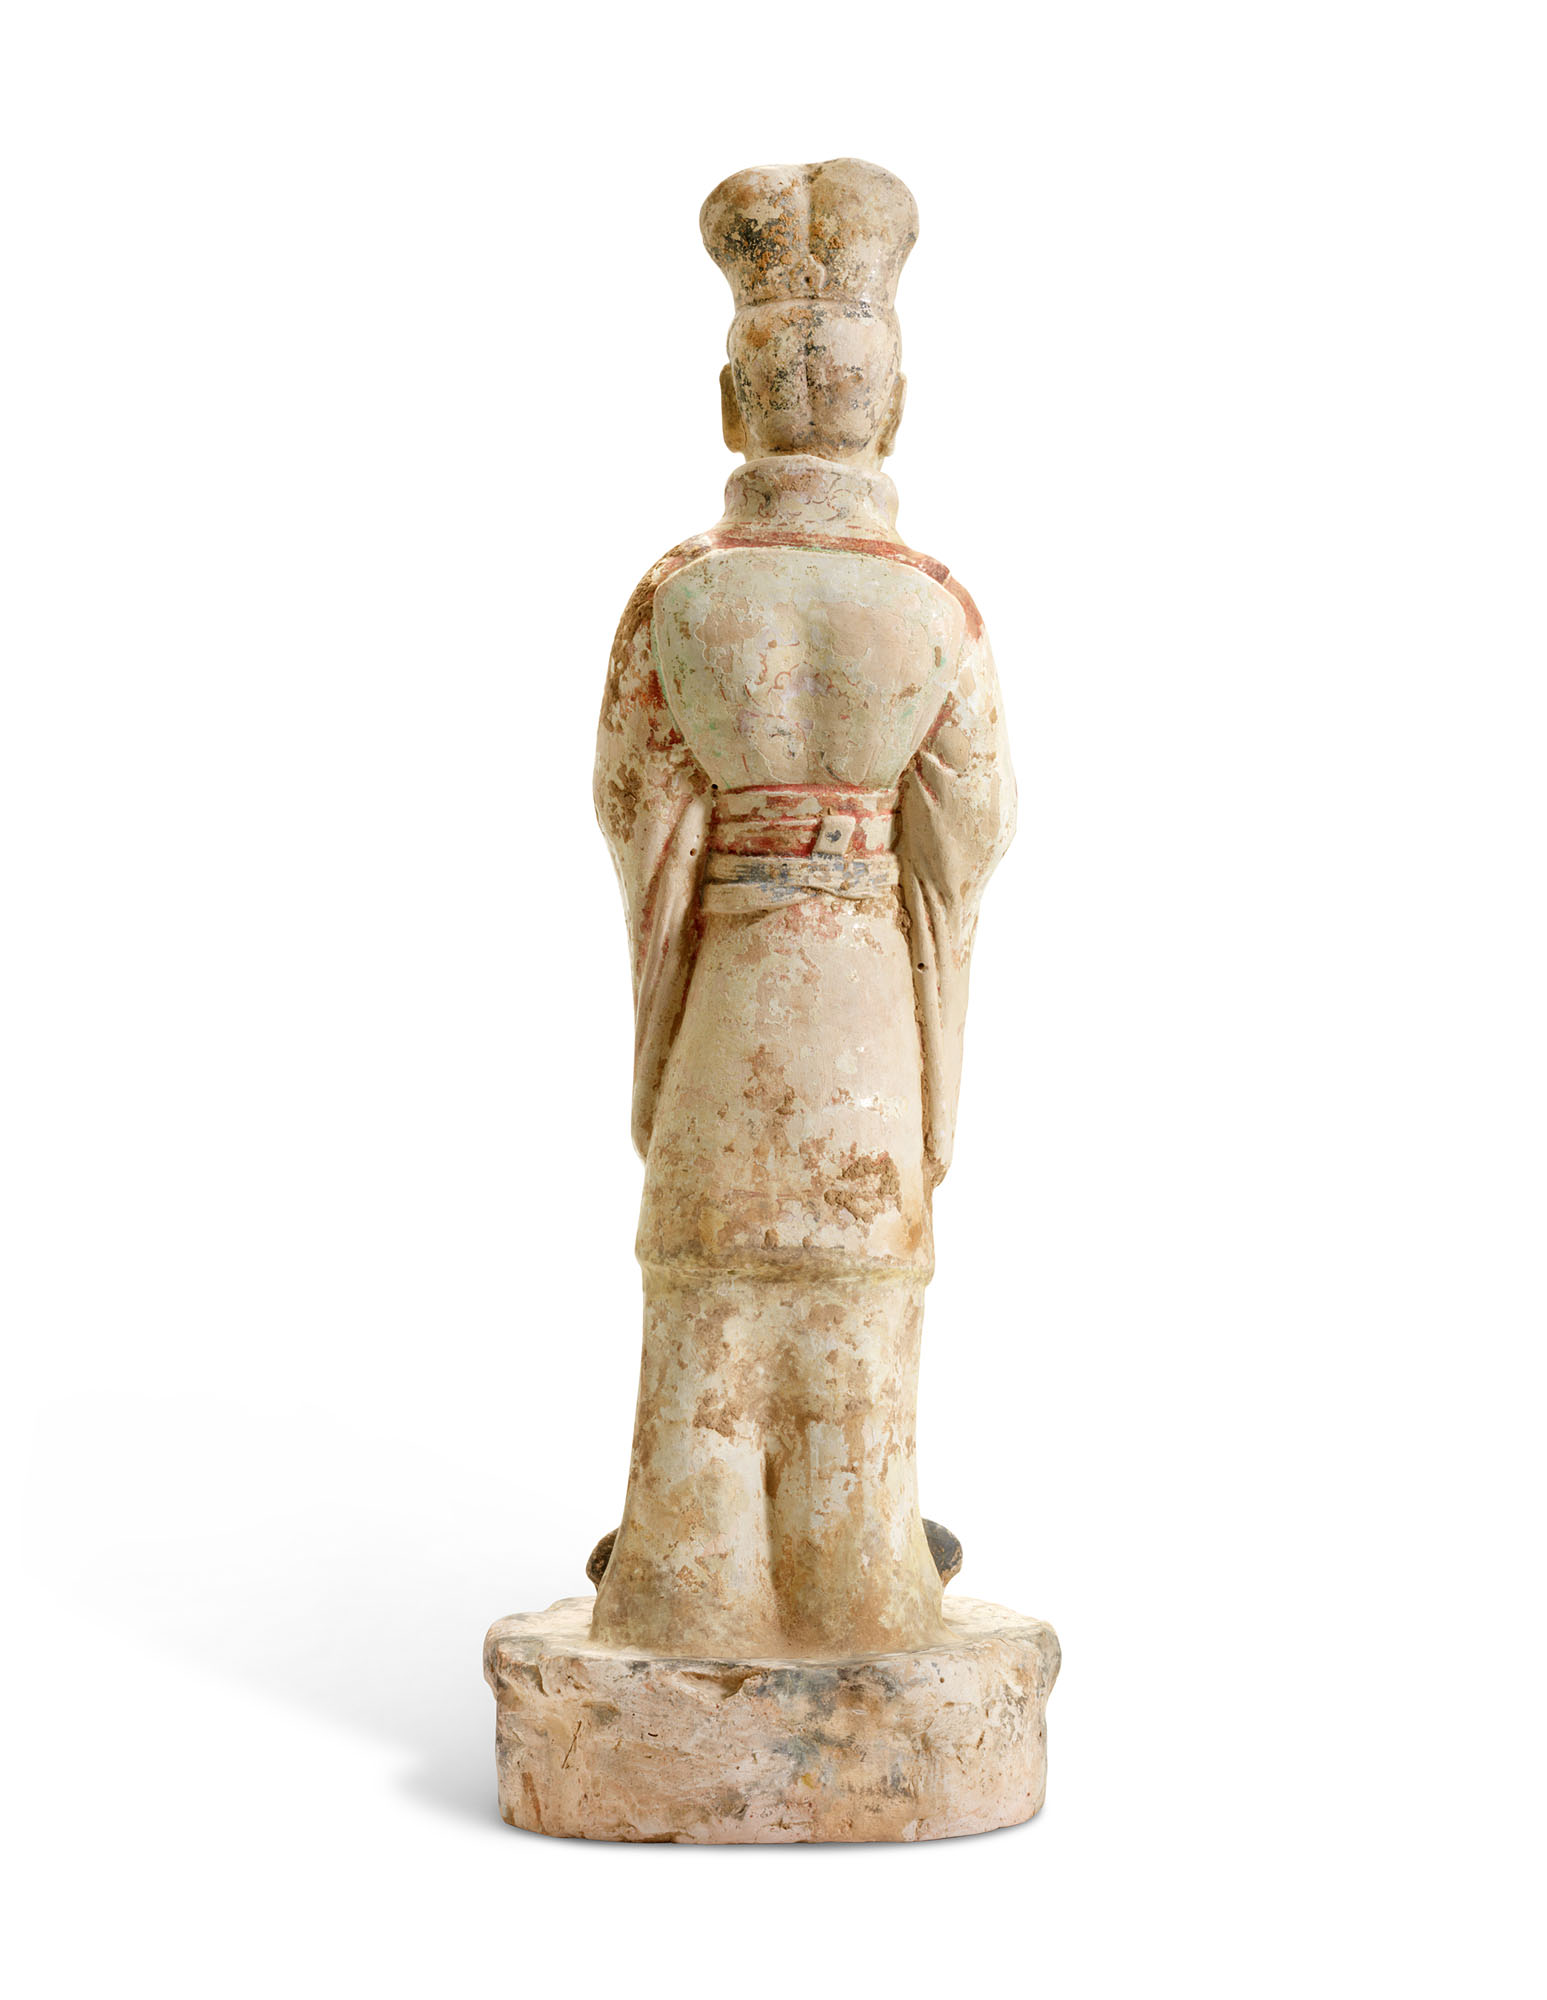 A PAINTED POTTERY FIGURE OF A CIVIL OFFICIAL